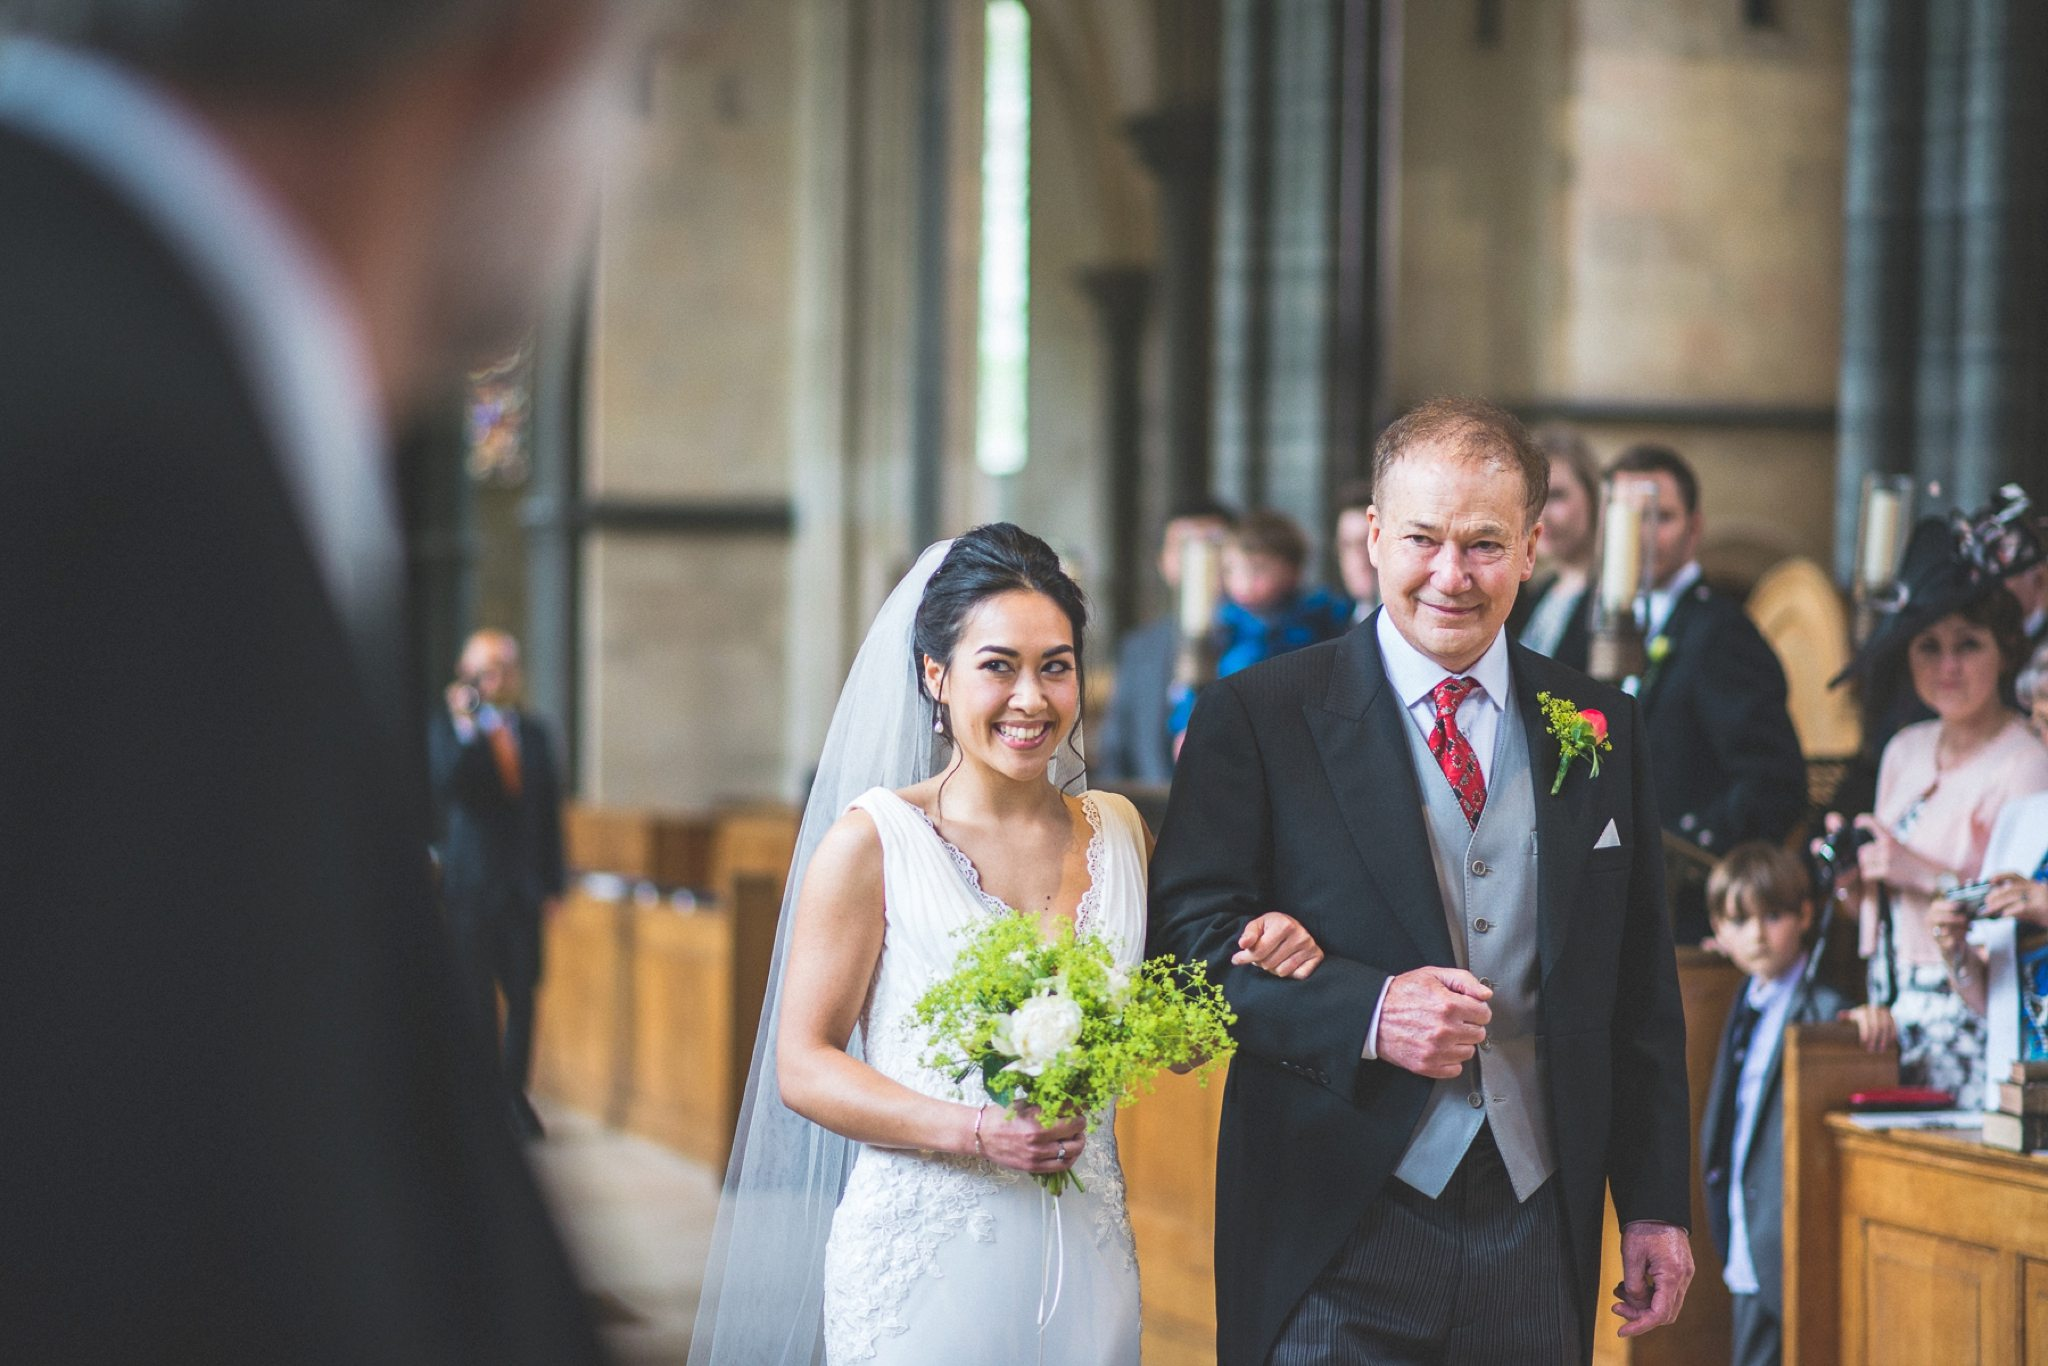 Bride walking down the aisle at Temple church seeing the groom look on his face and smiling